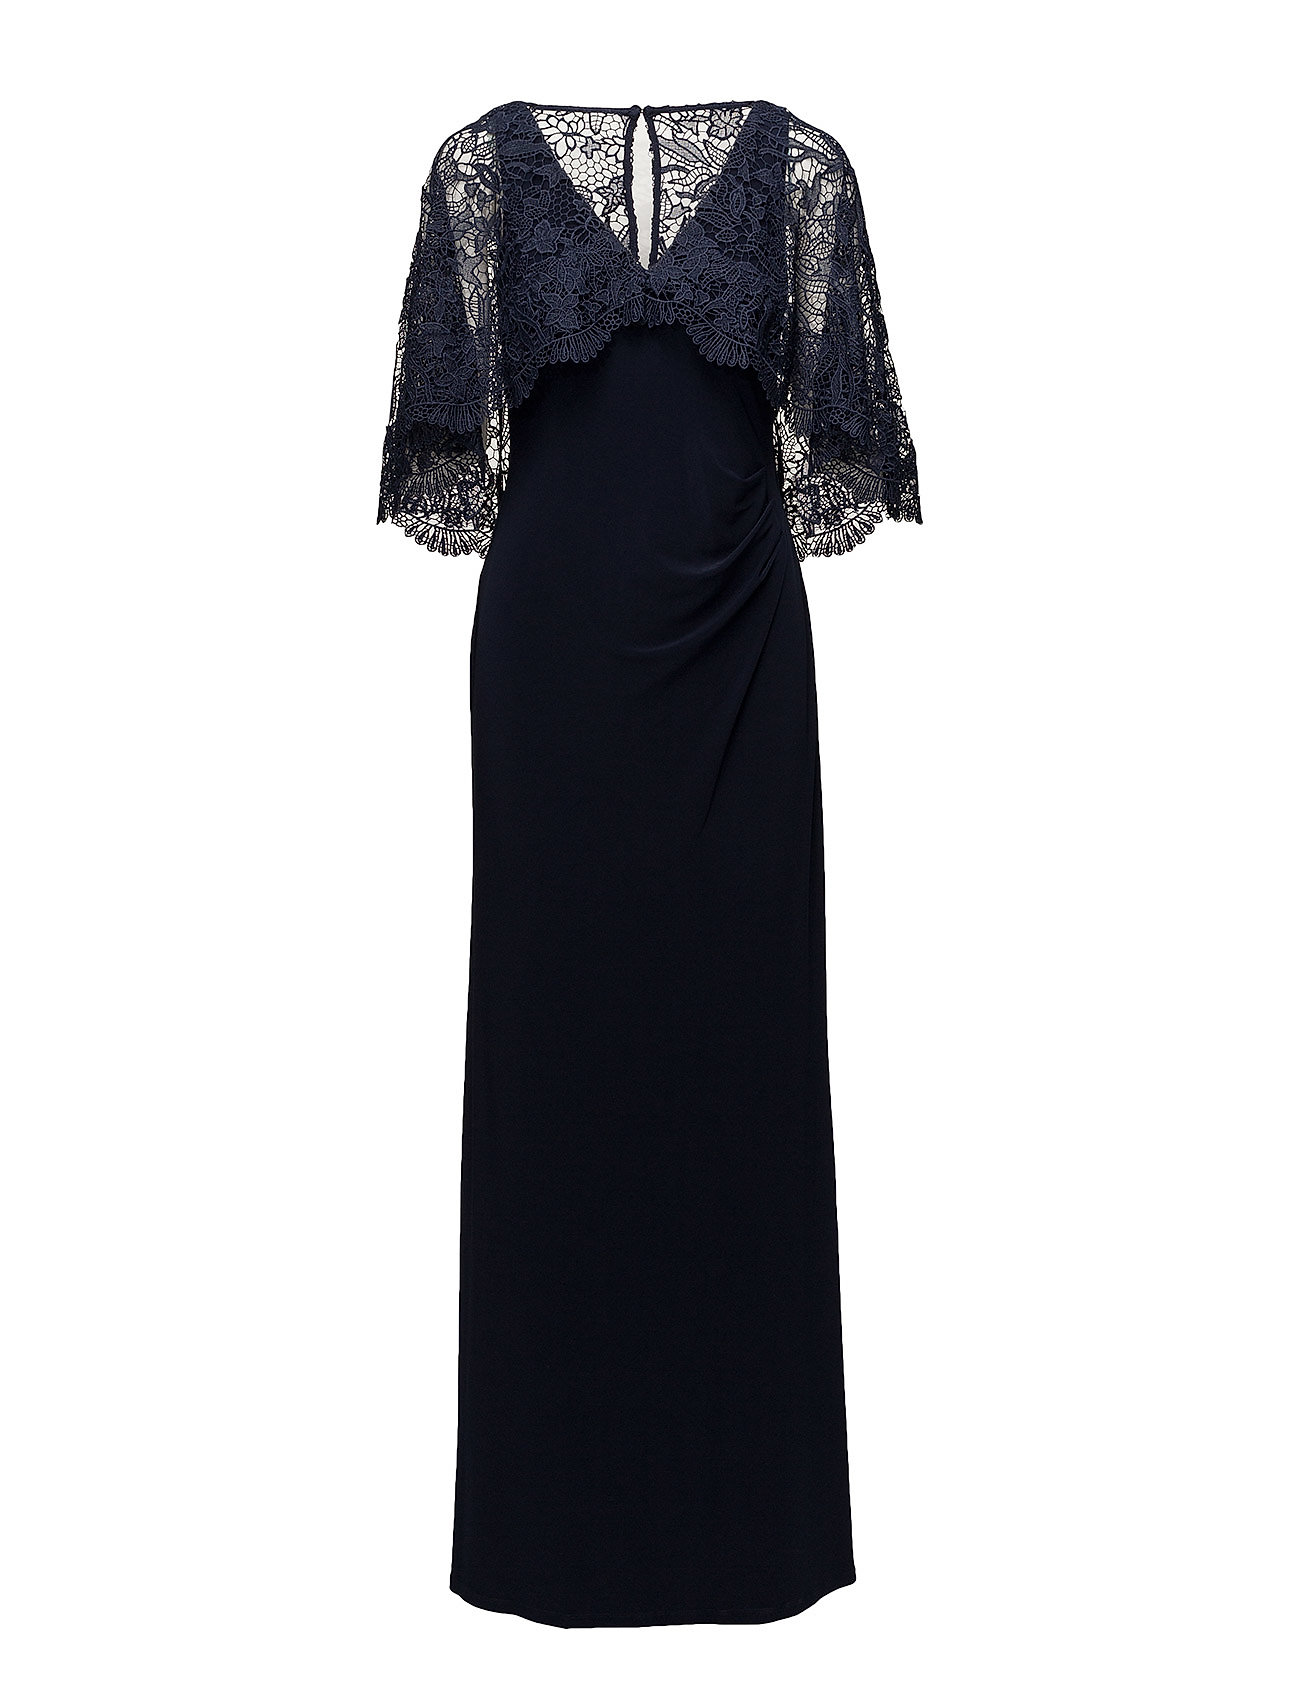 5796eed8610 Lace-overlay Jersey Gown (Lighthouse Navy/l) (£123.75) - Lauren ...